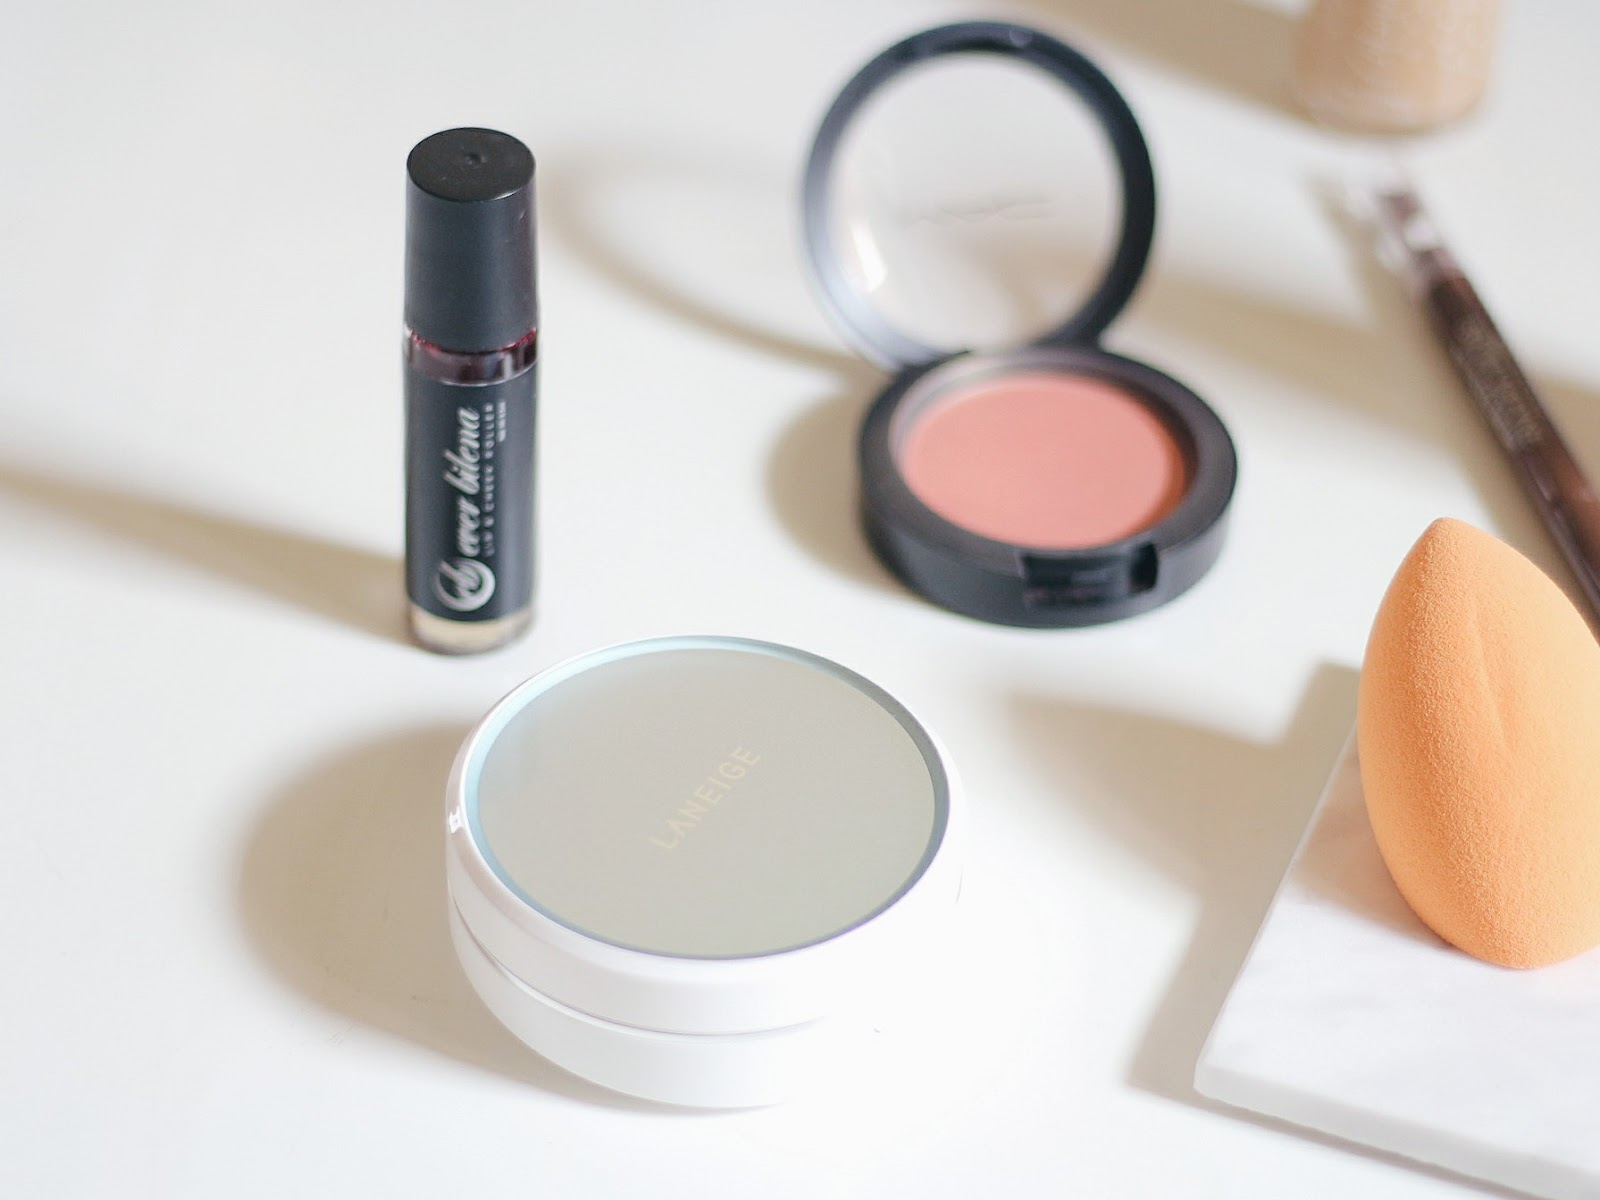 EB Lip and Cheek Roller in Whipped Blush